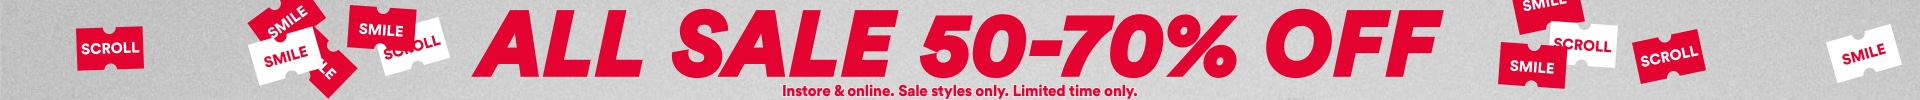 All Sale 50-70% Off, Click to Shop.